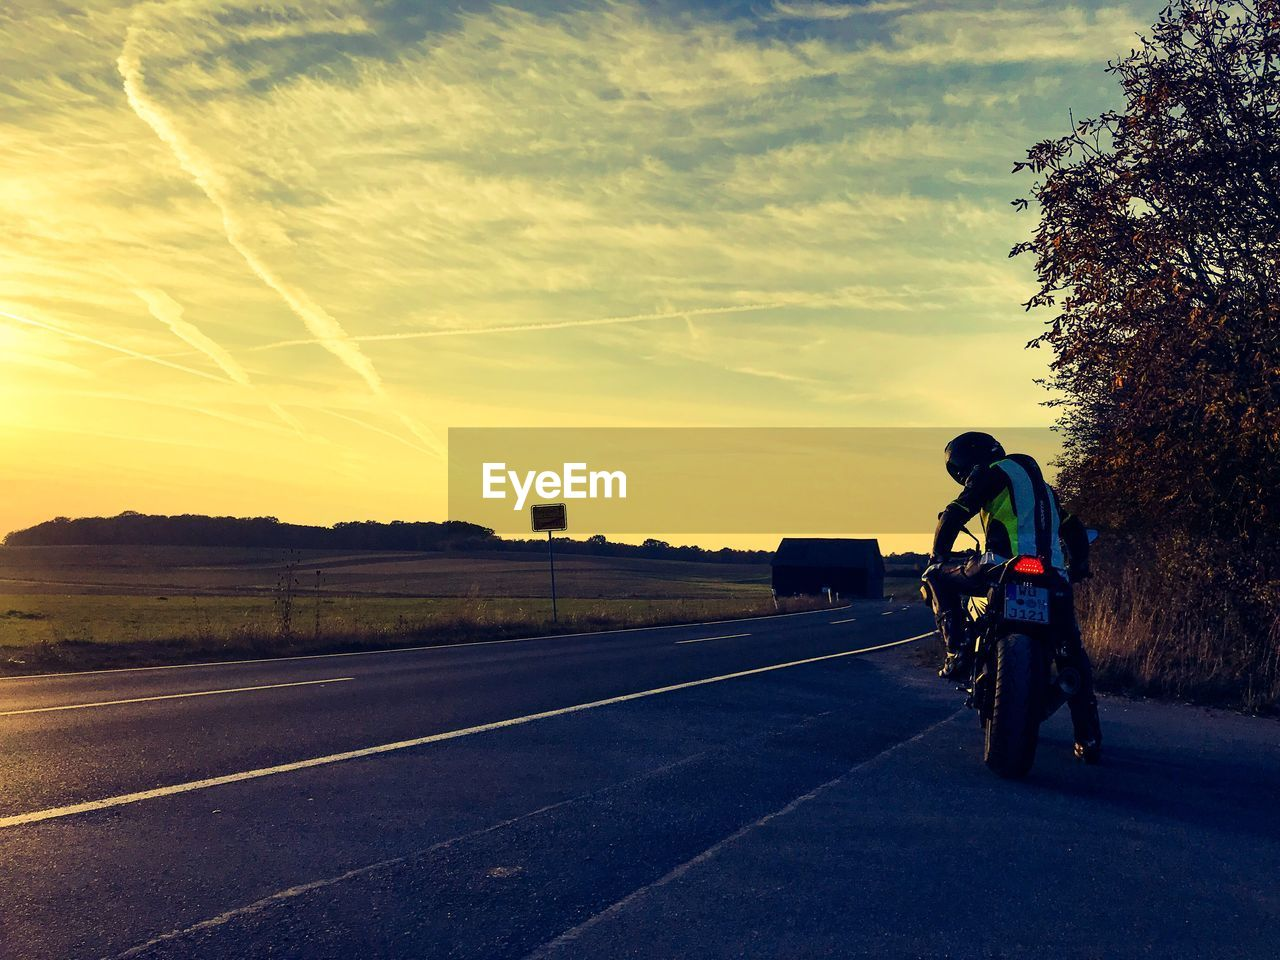 transportation, sky, one person, road, sunset, bicycle, full length, rear view, cloud - sky, nature, symbol, men, real people, mode of transportation, sign, road marking, land vehicle, tree, travel, outdoors, riding